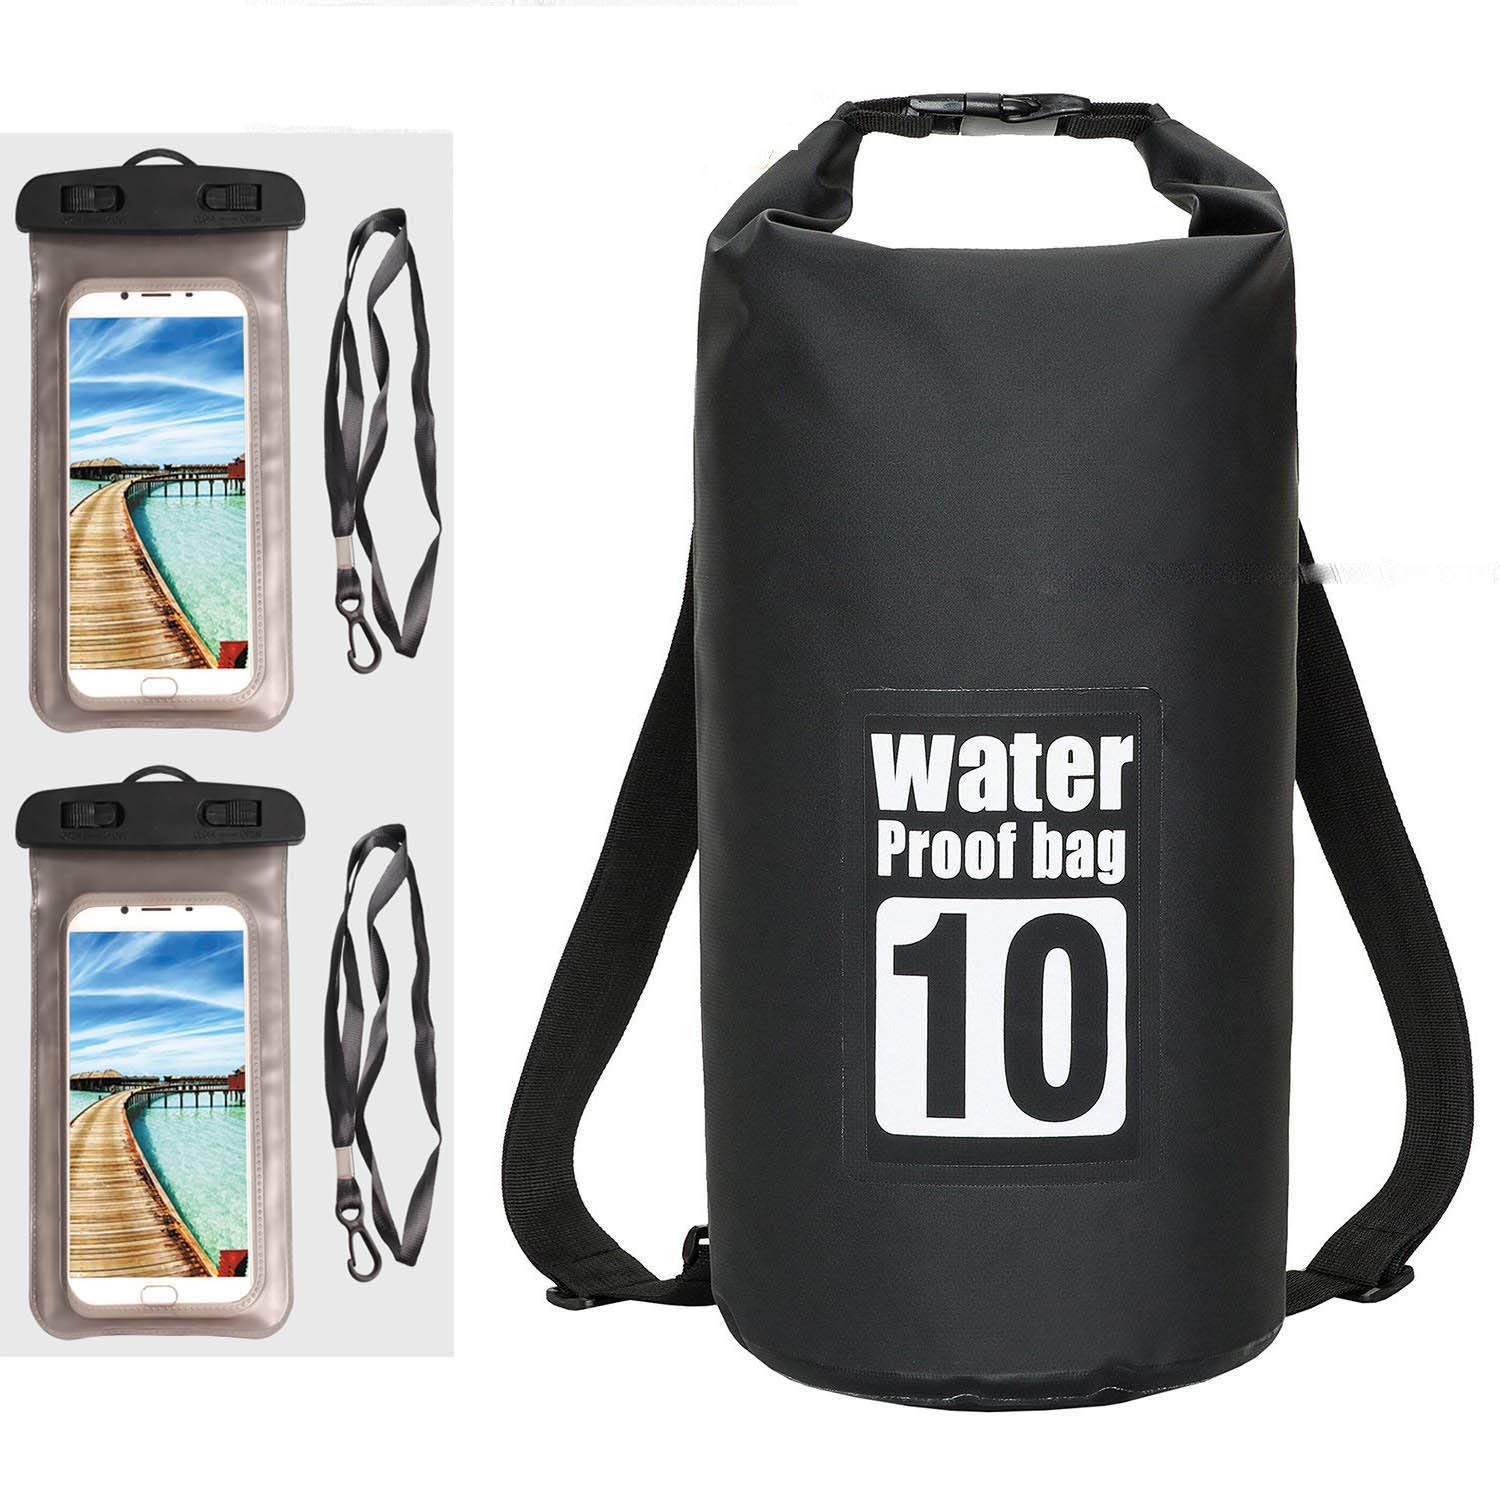 Floating Waterproof Dry Bag 10L, Roll Top Sack Keeps Gear Dry for Beach Boating, Kayaking, Rafting, Swimming, Camping, Hiking, Canoeing, Fishing with 2 Waterproof Phone Cases